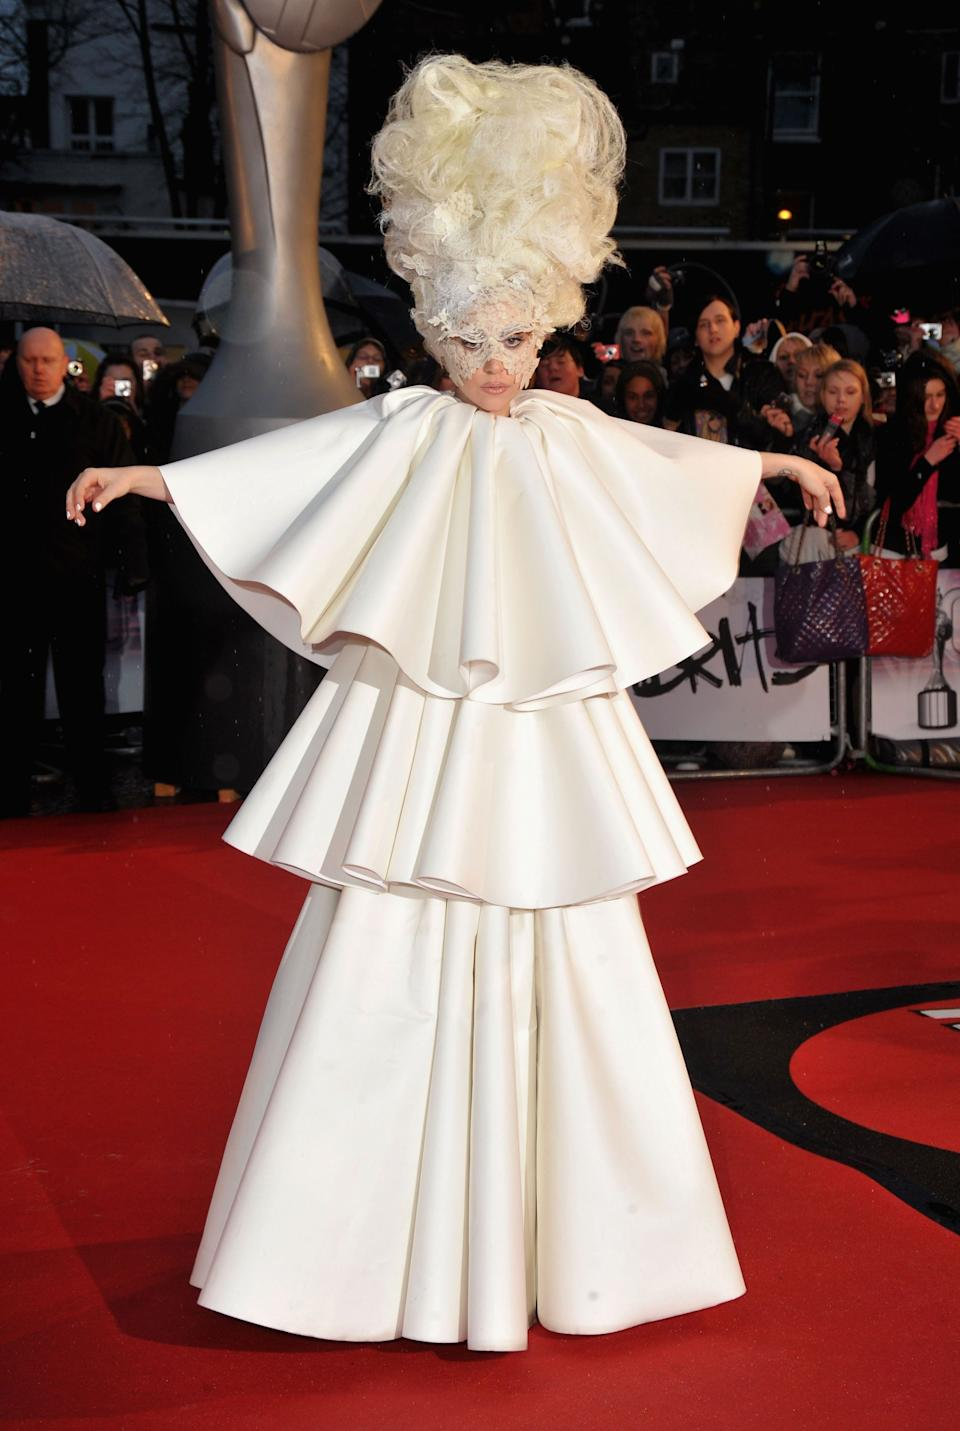 Gaga wears a gown by Francesco Scognamiglioon the red carpet at the 2010 Brit Awards.